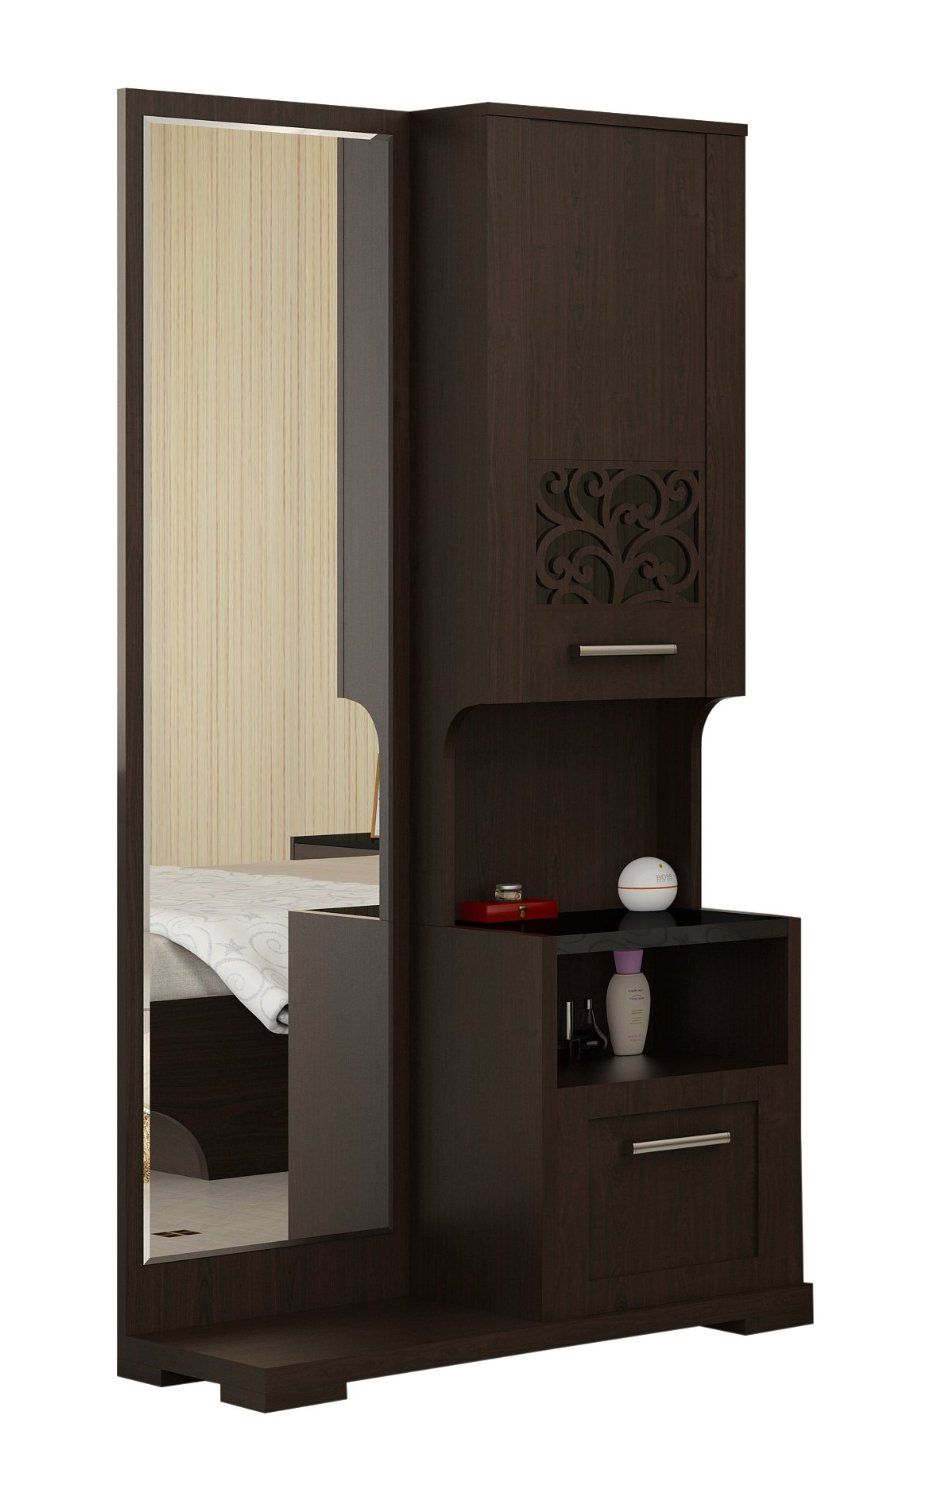 Spacewood Akina Dressing Table Brown Amazon In Home Kitchen